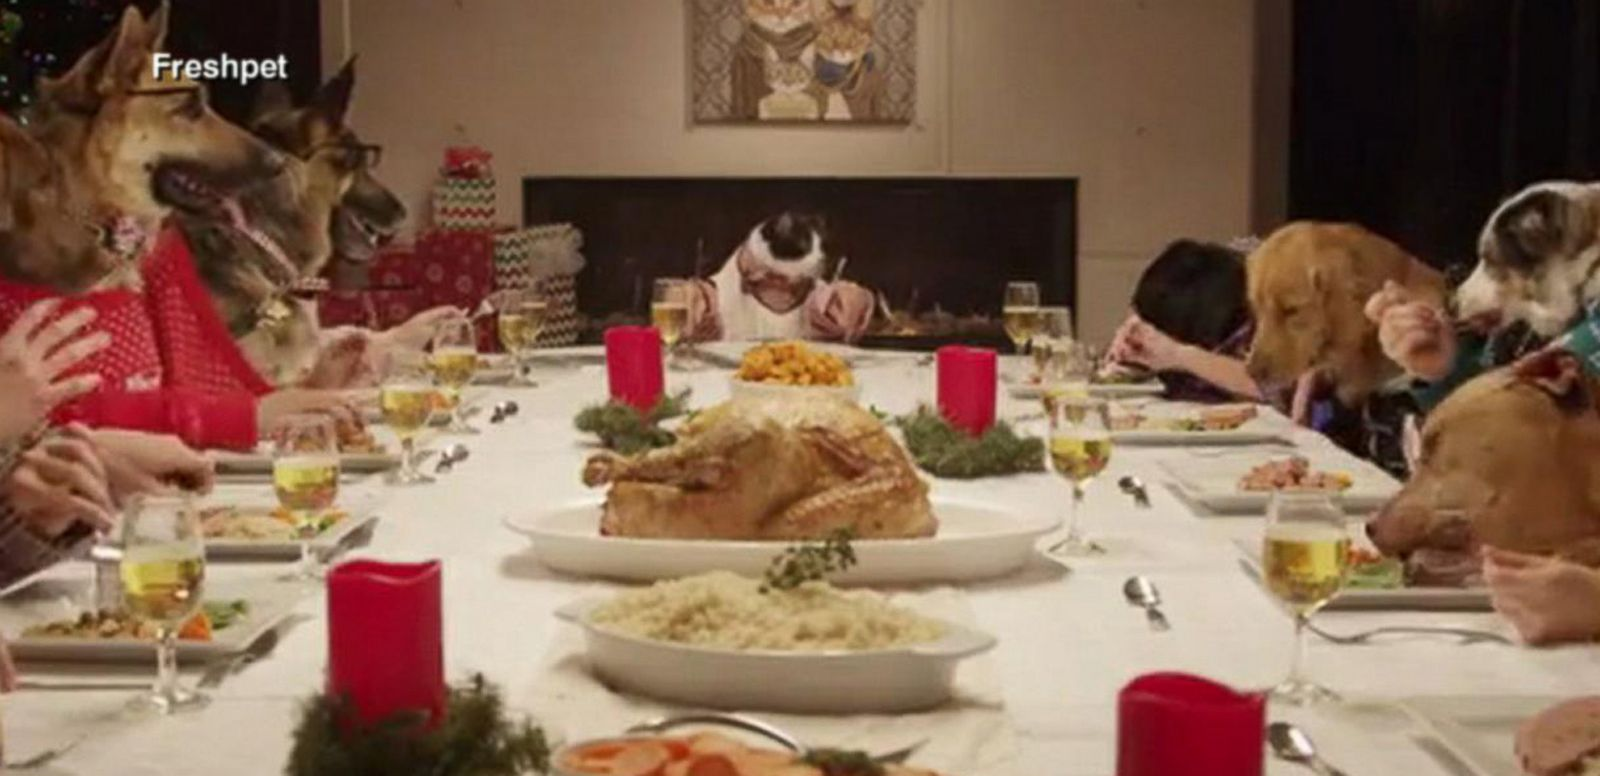 VIDEO: Pets Eat Christmas Dinner Together in Hilarious, Cute Humane Society Ad